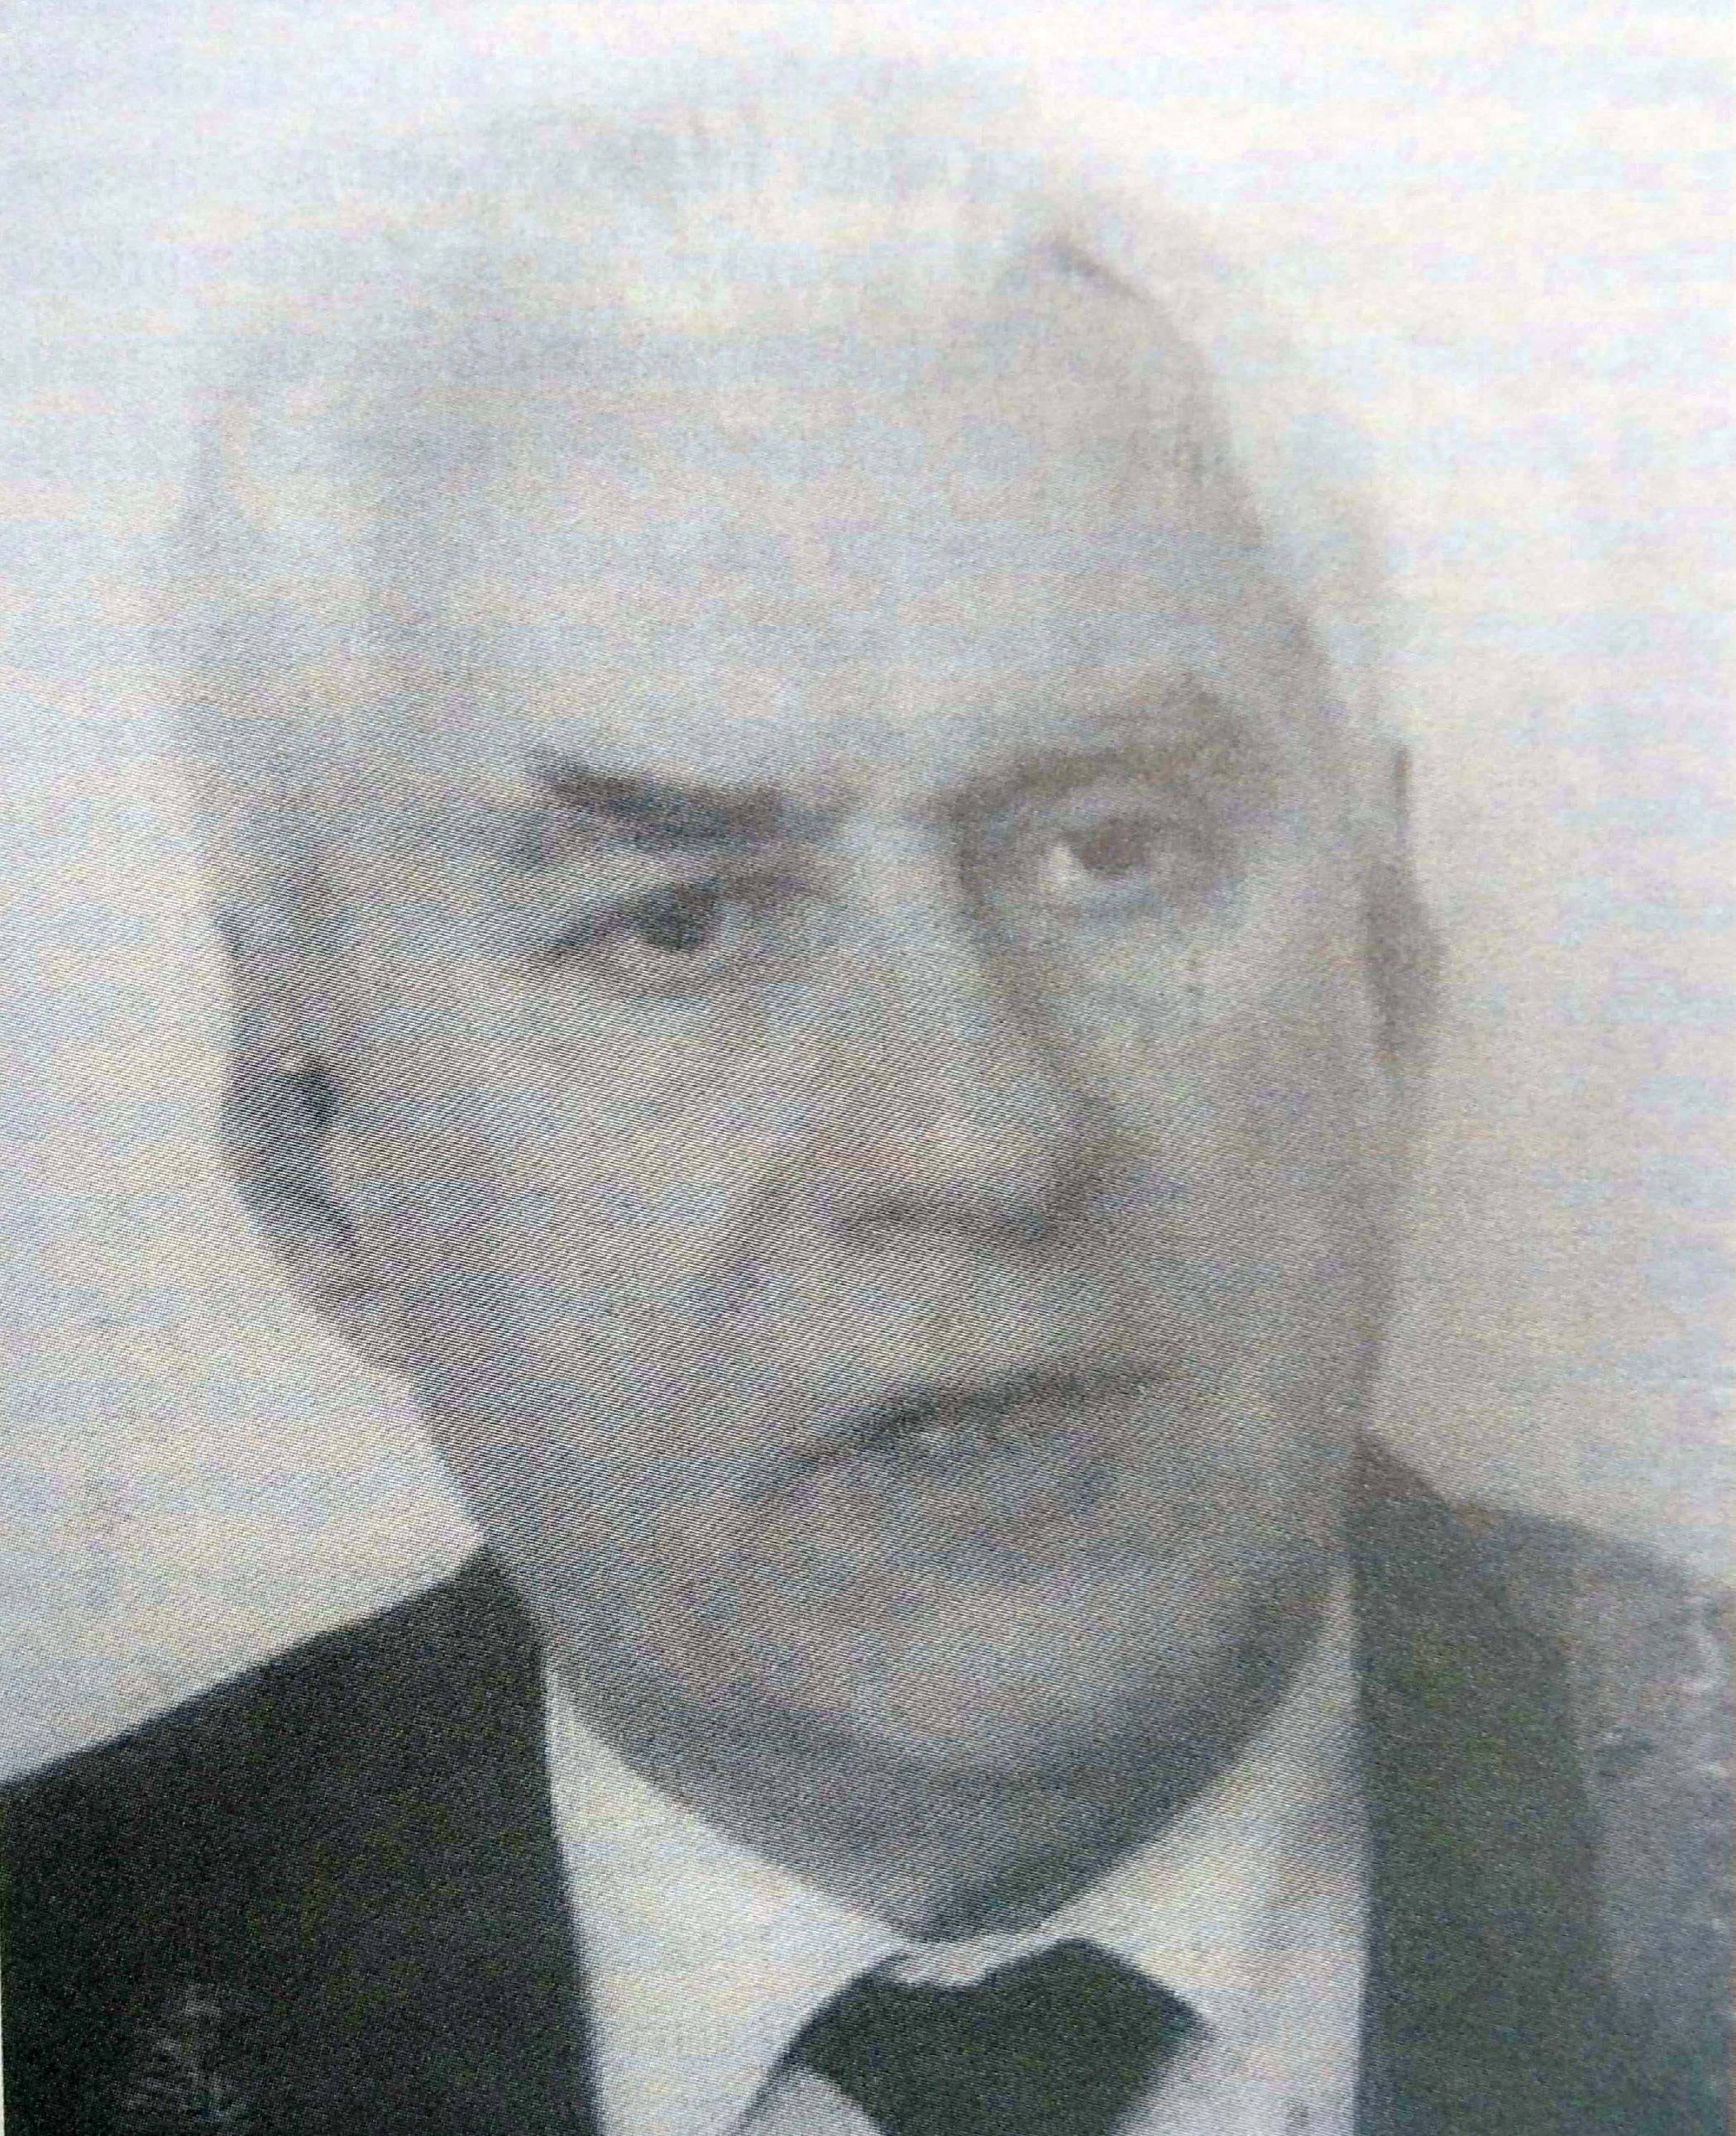 Marijan Bručić (1927-2006), a teacher who rescued the Zagreb classical program from socialist reforms.